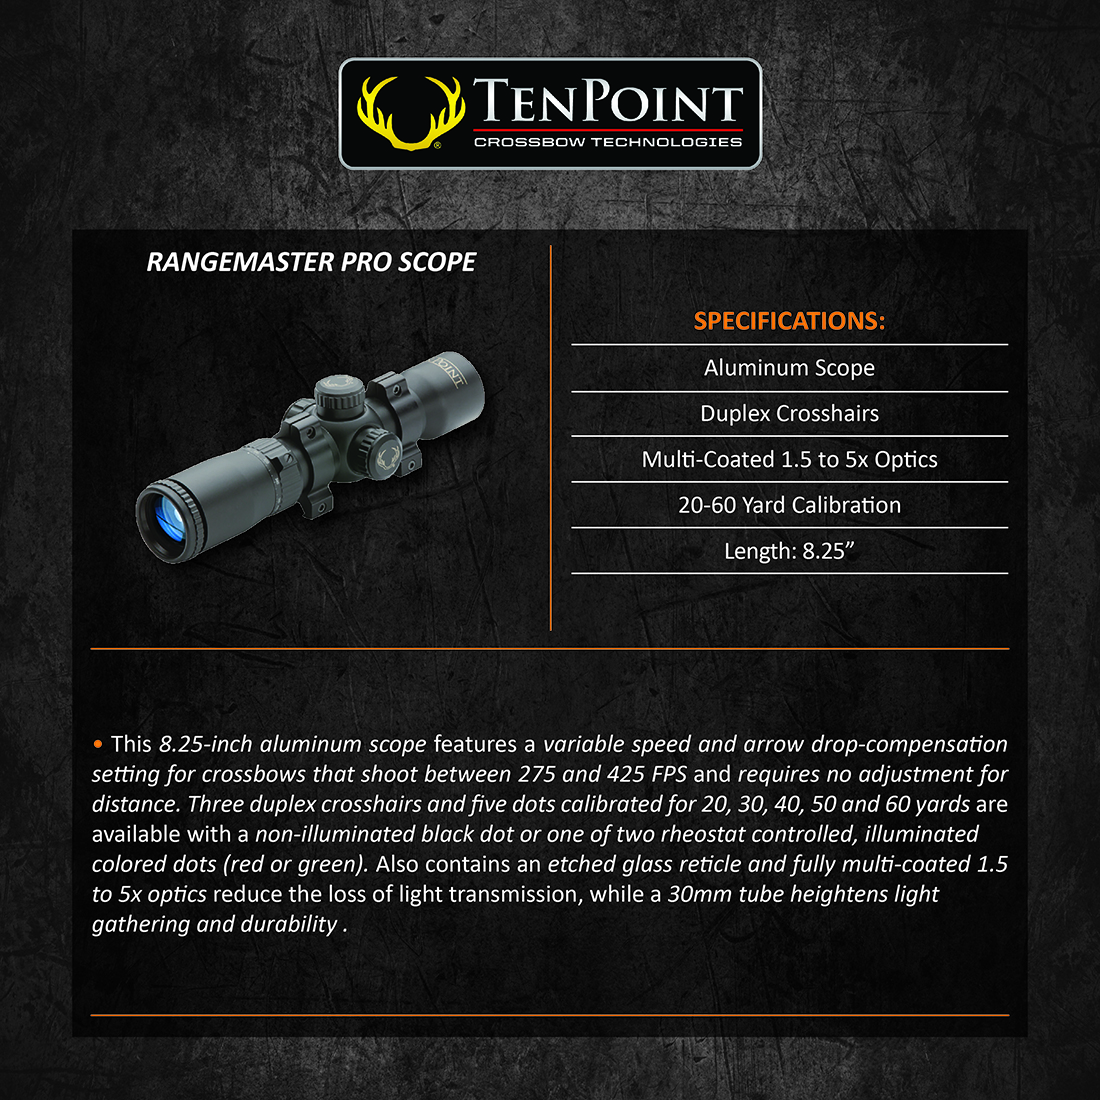 TenPoint_RangeMaster_Pro_Scope_Product_Description